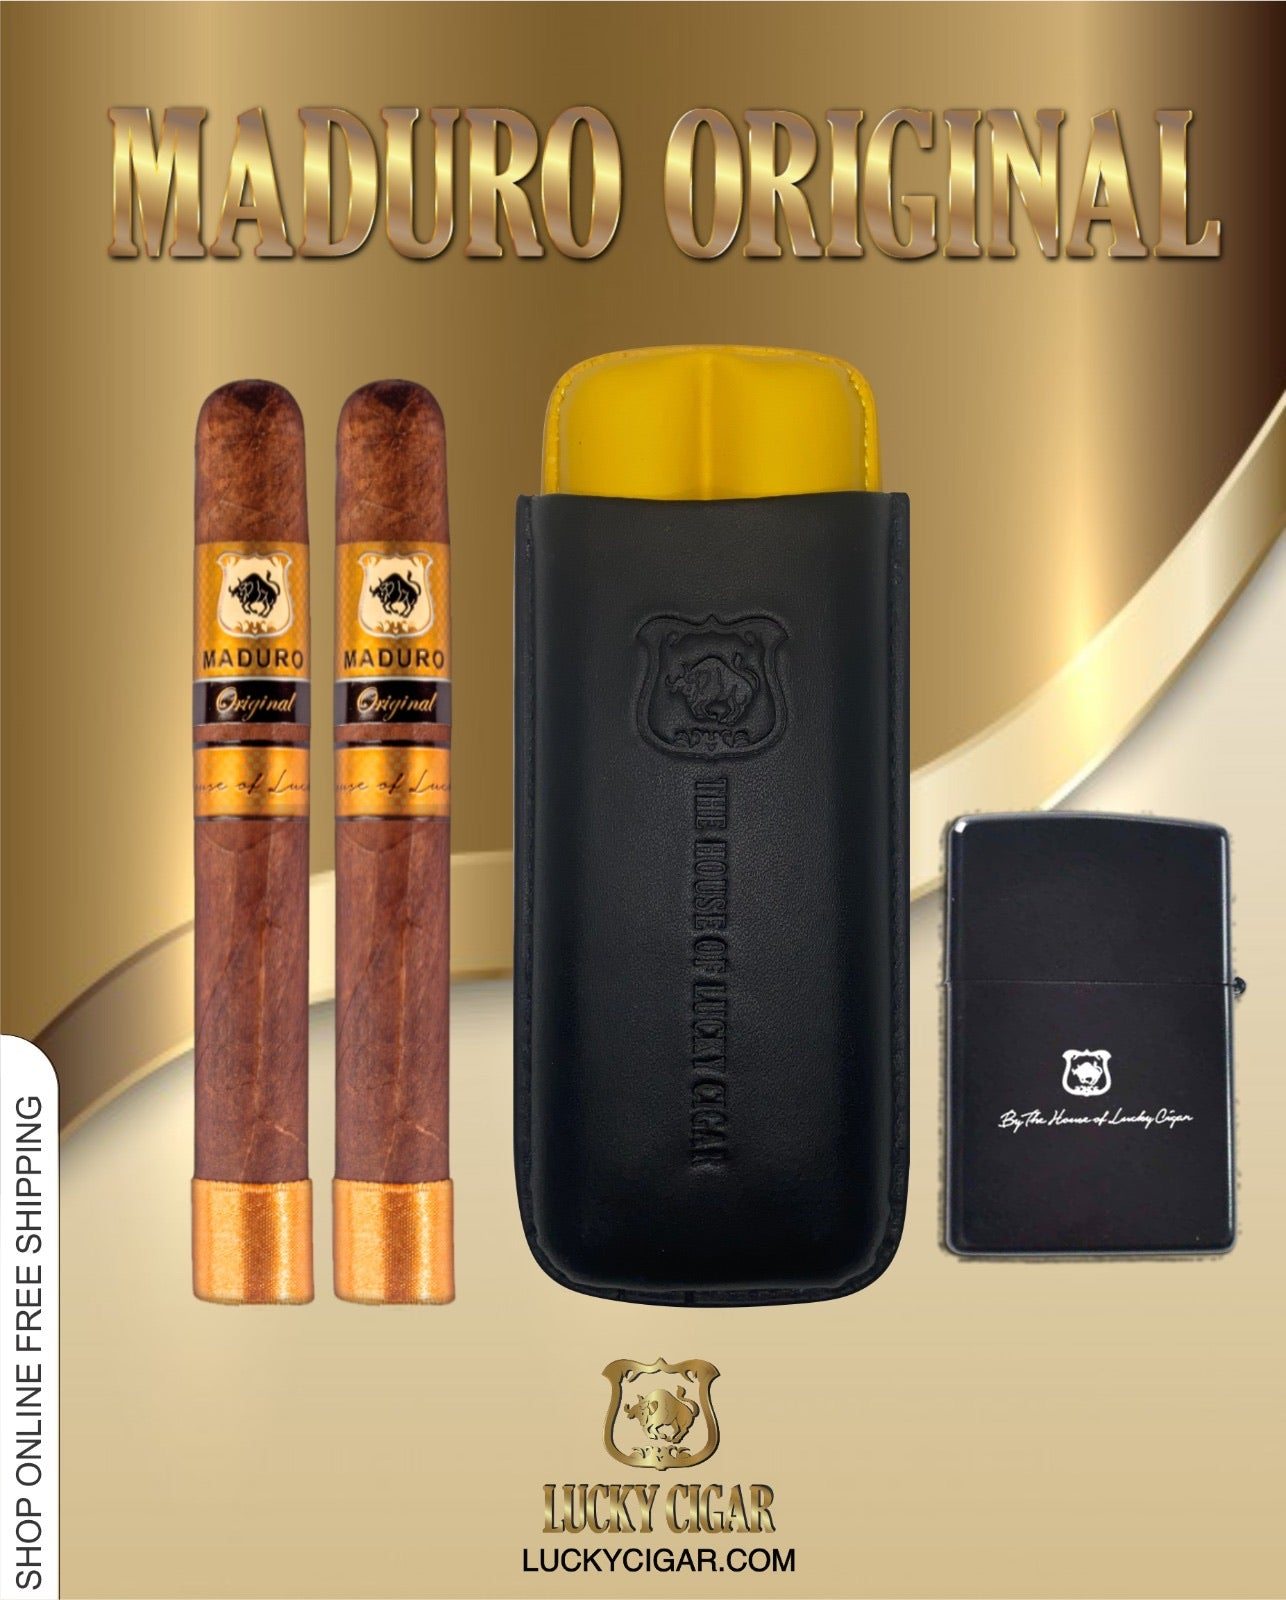 The Churchill Maduro original set includes: